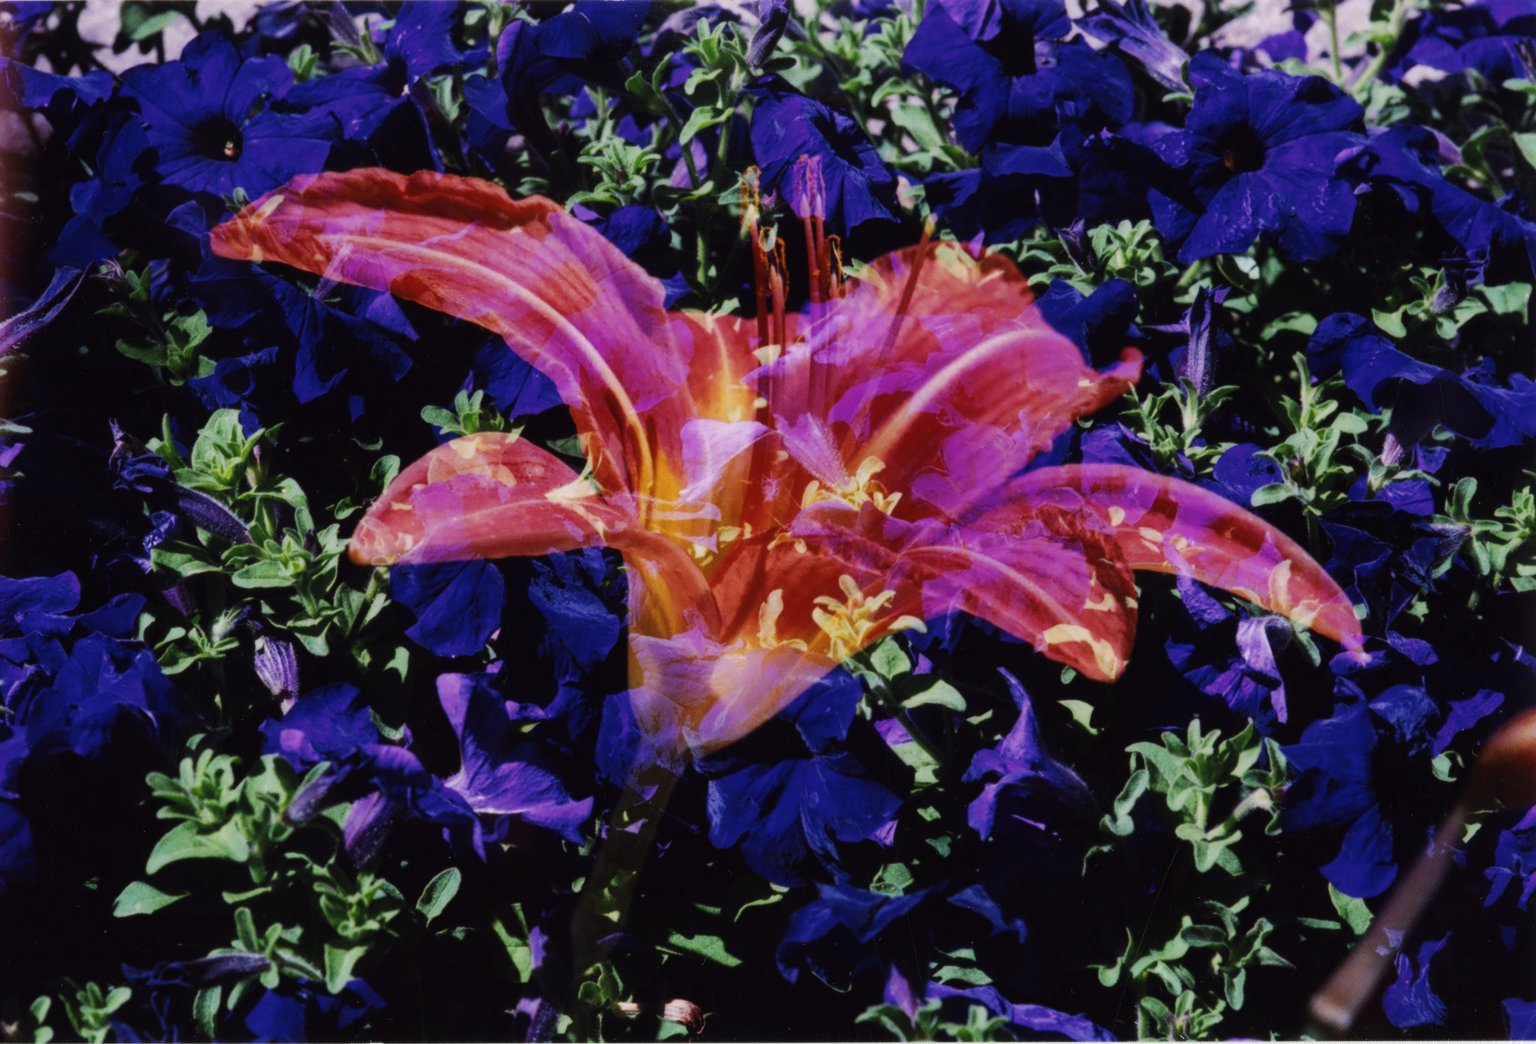 Double Exposure - Red lily over purple flowers